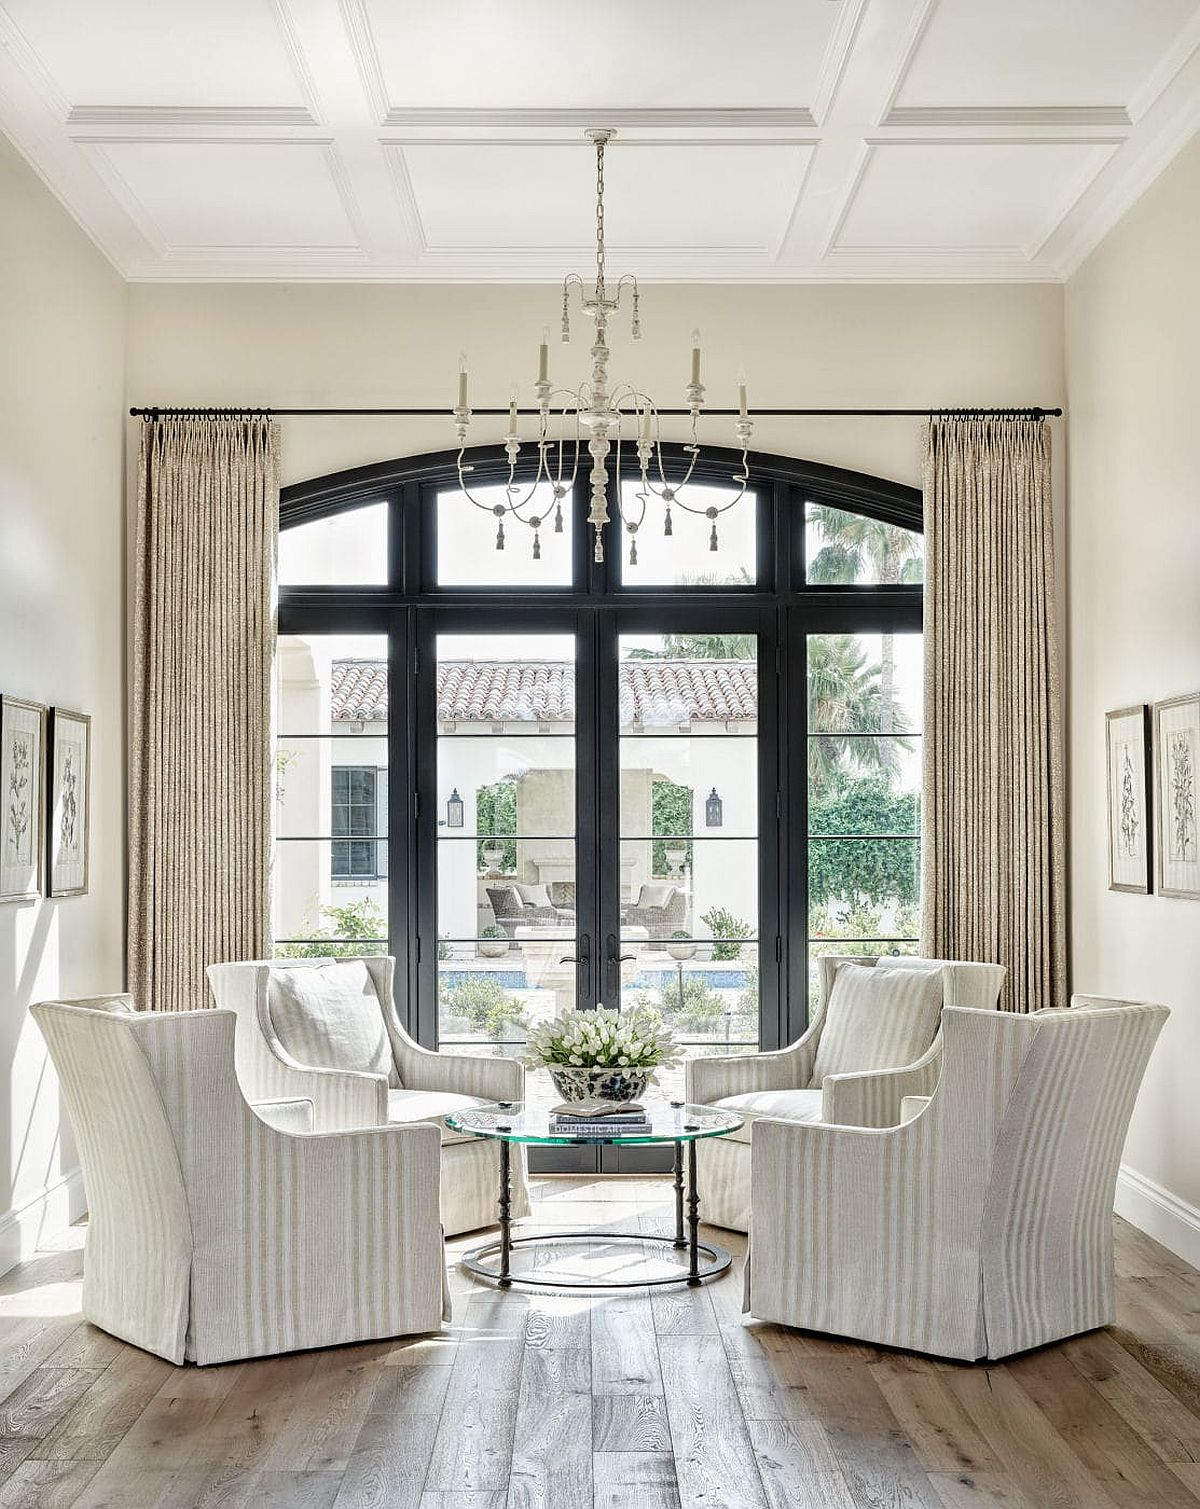 Gorgeous sitting room in white with ample natural light and a window that shapes the backdrop